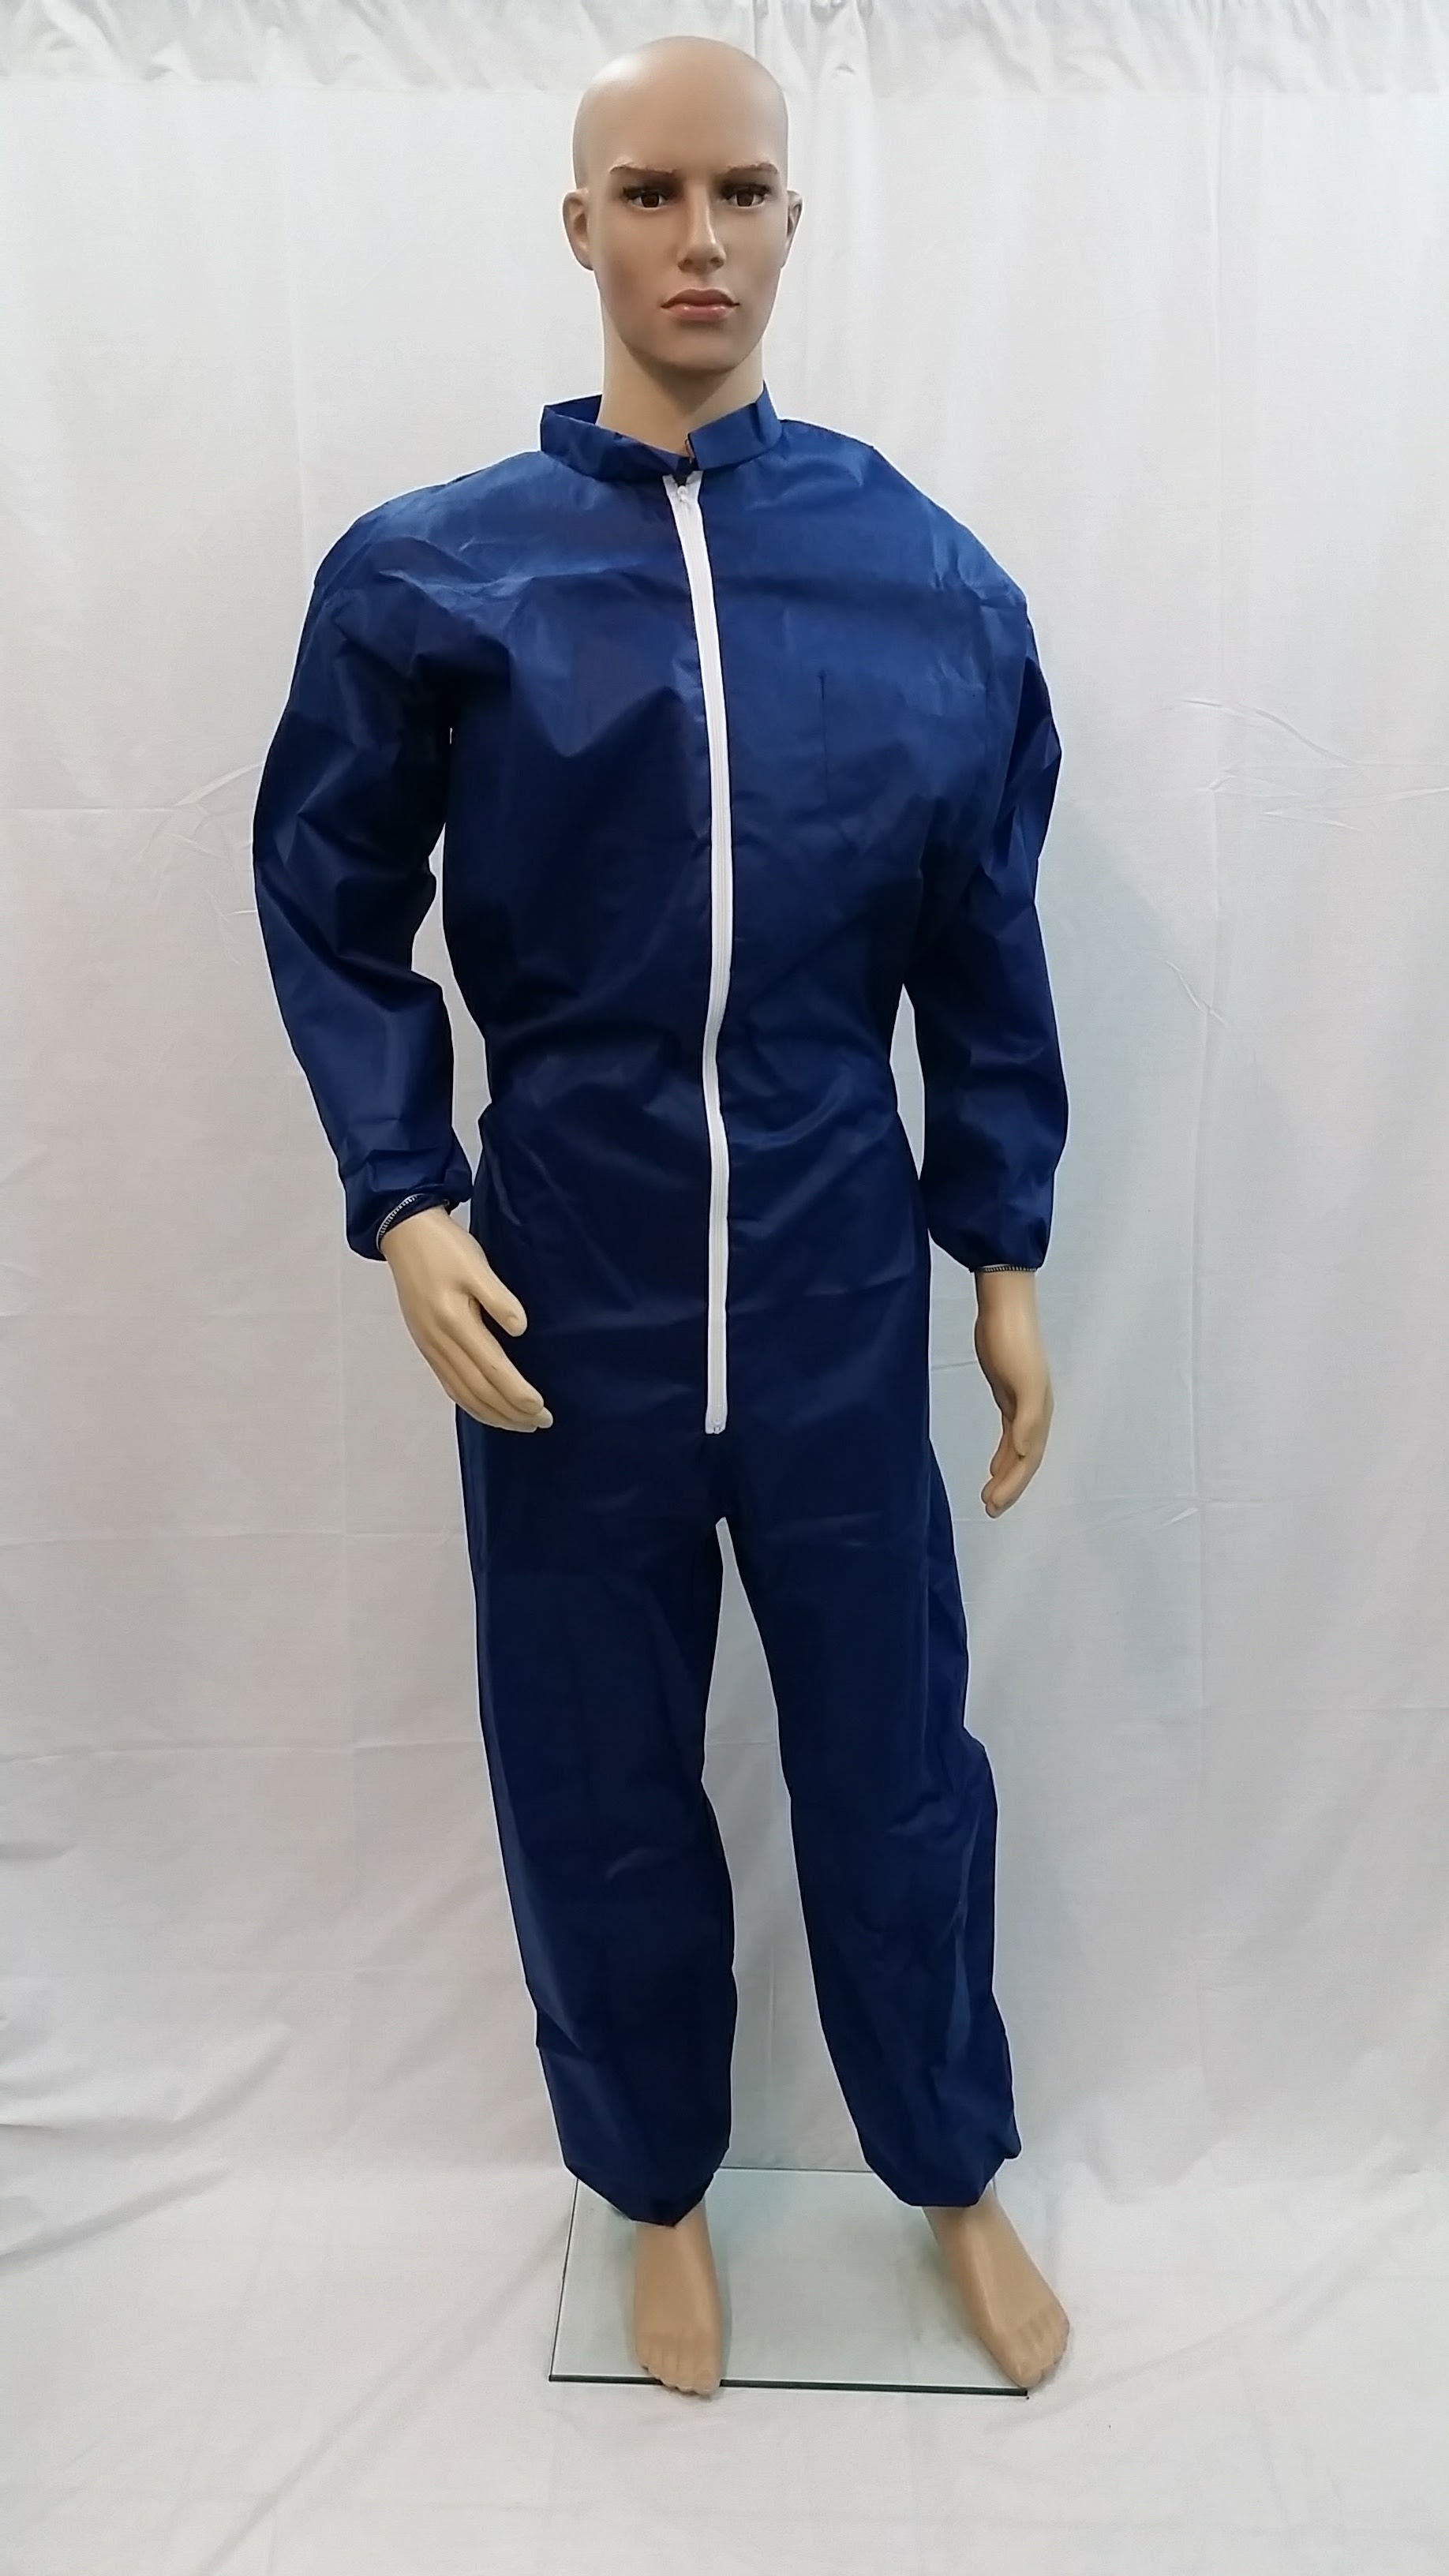 Garments for total and partial protection of the body against slight risks